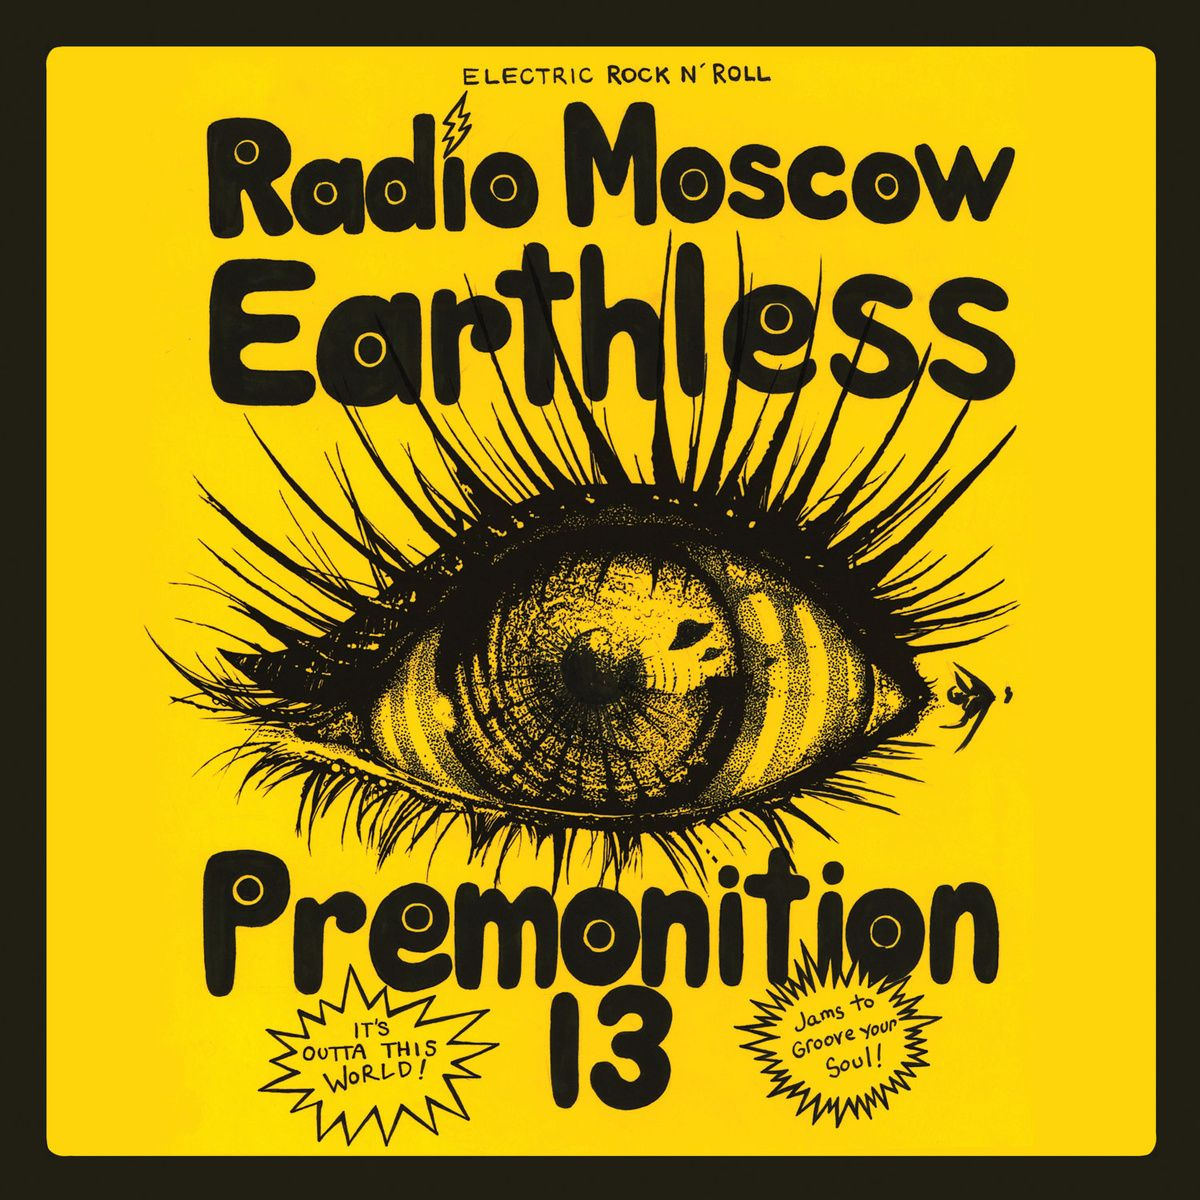 Radio_Moscow_Premonition_13_Earthless.jpg